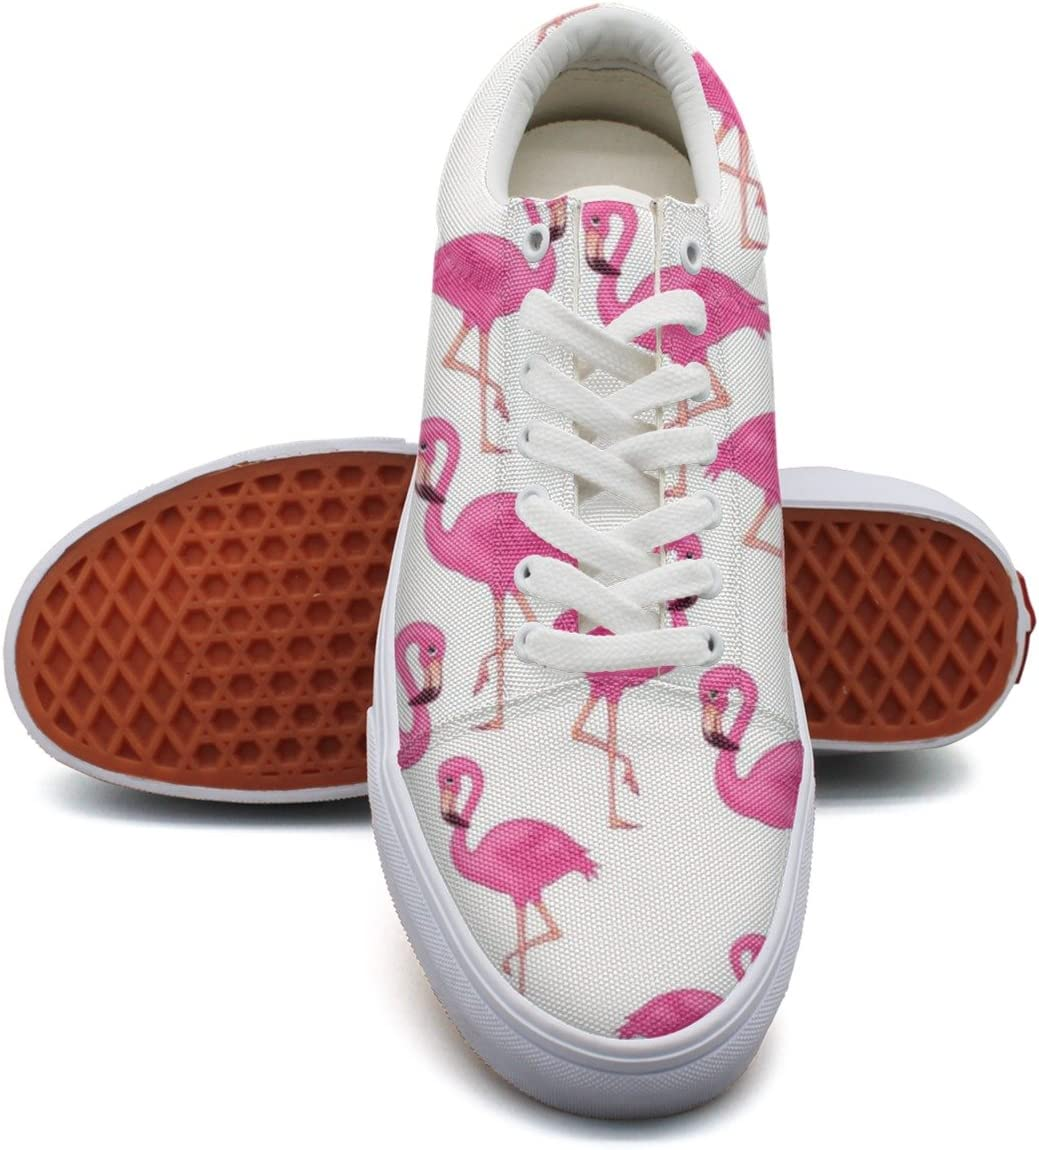 Ouxioaz Womens Skateboard Shoes Old Music Notes Work Shoe Laces